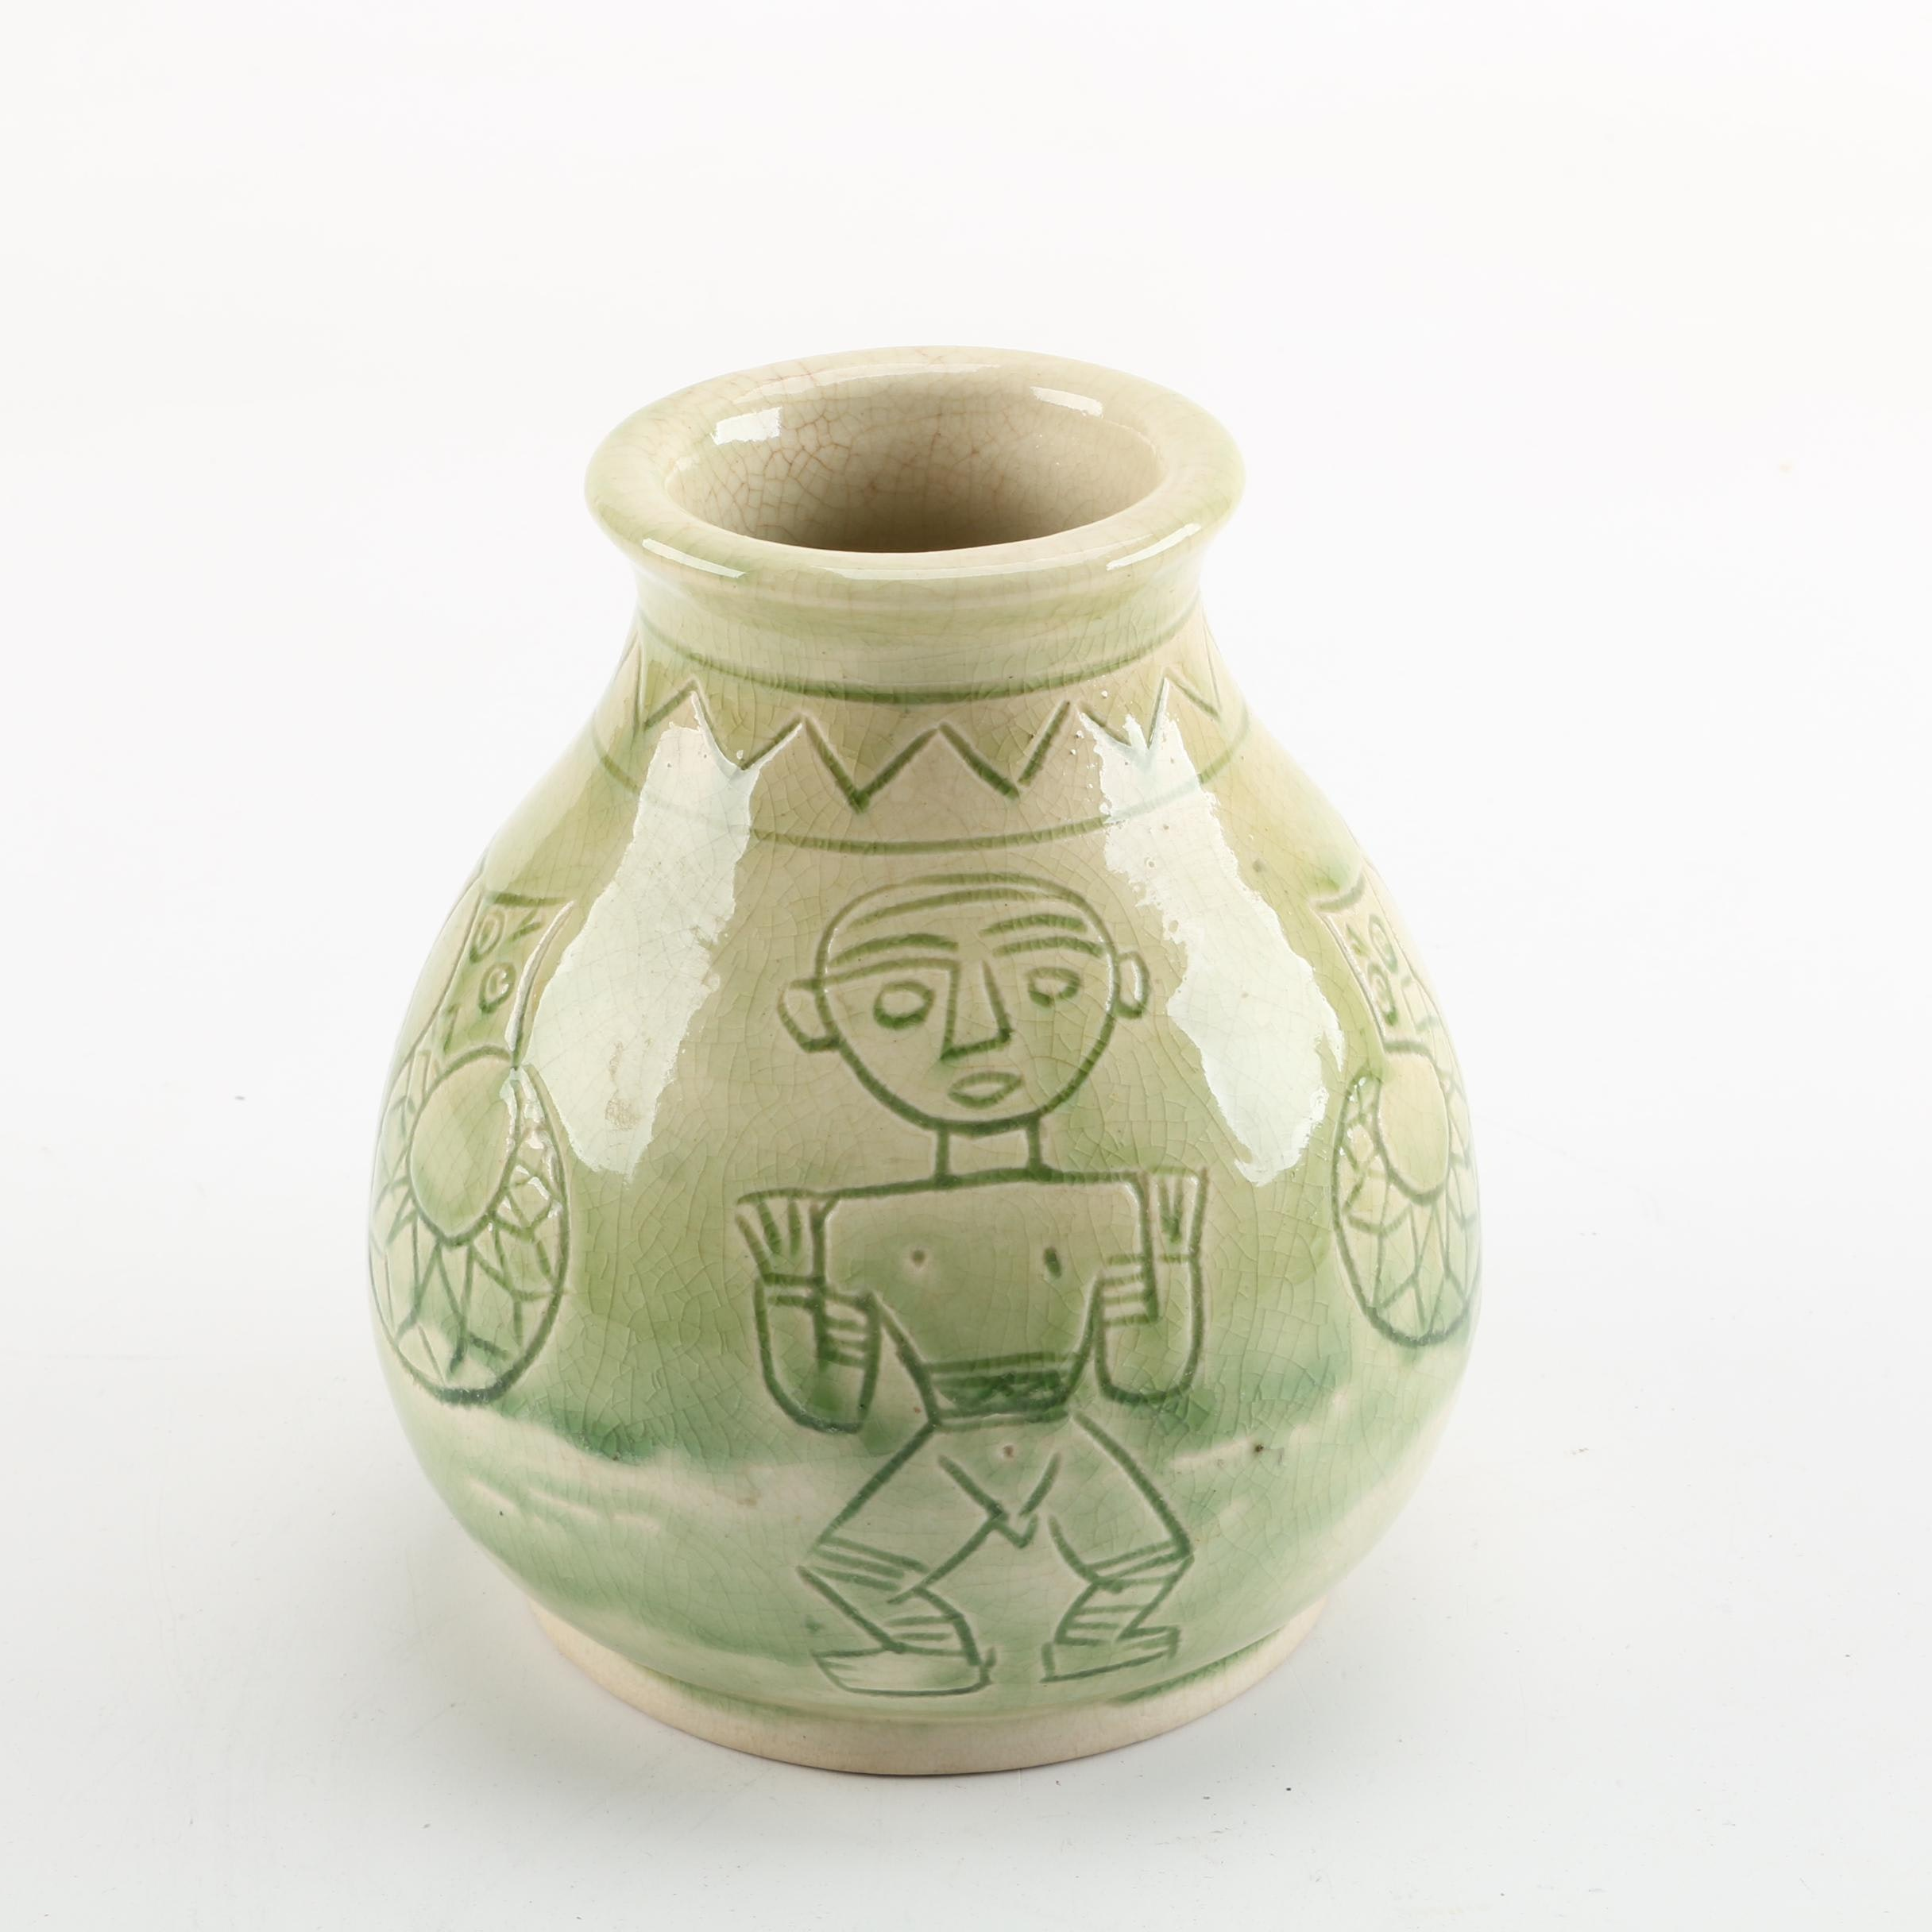 Ceramic Vase With Stylized Incised Designs